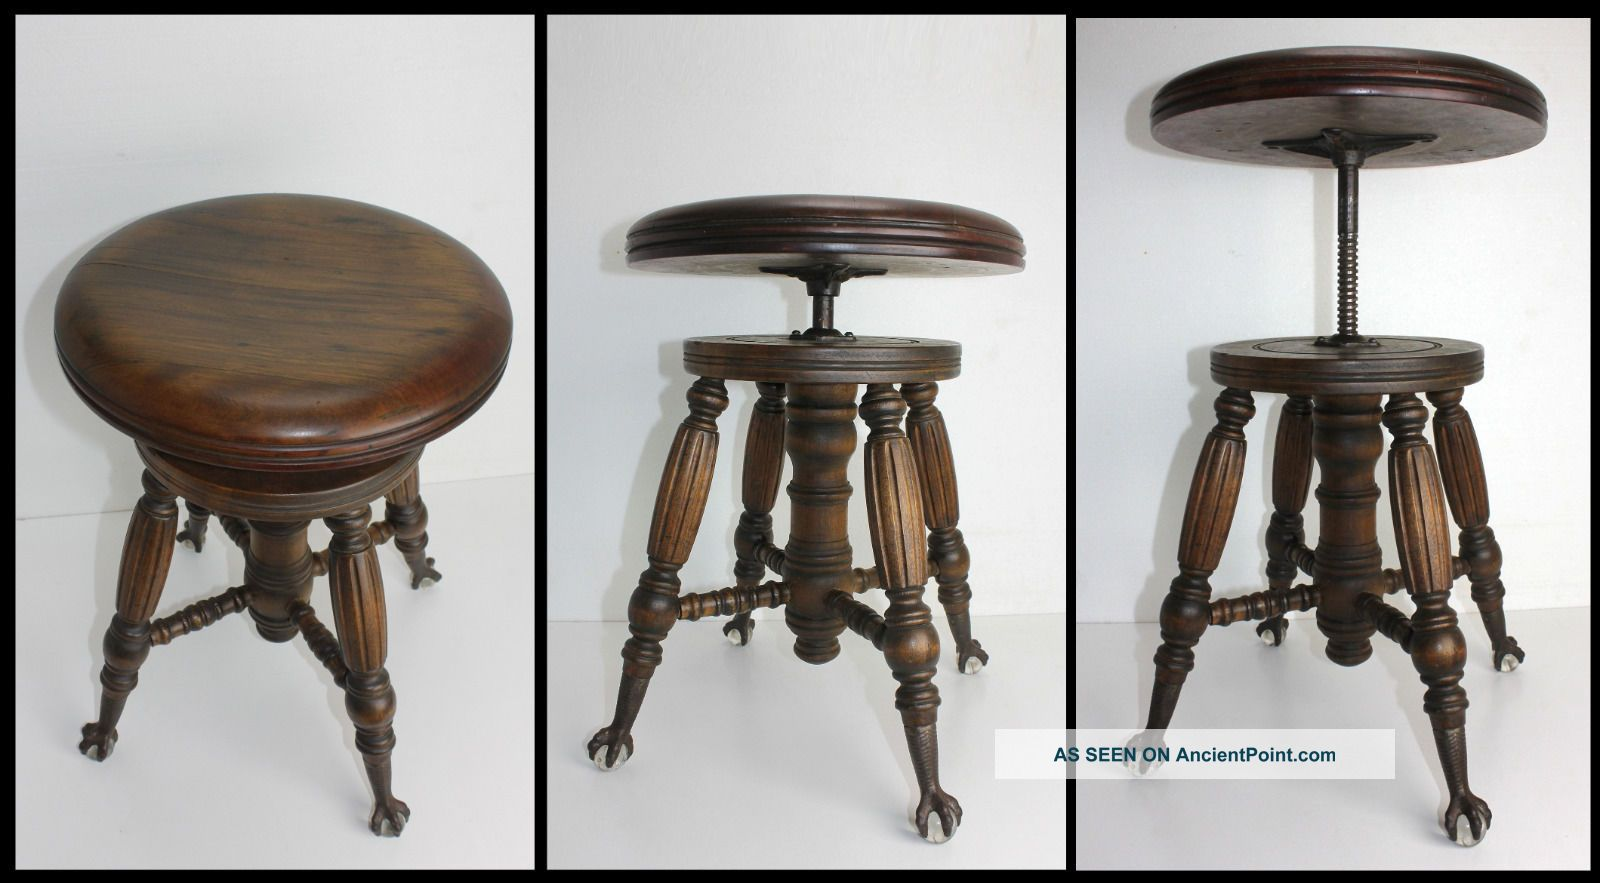 Antique Wood Charles Parker Co Adjustable Organ Piano Stool Glass Ball Claw Feet 1800-1899 photo